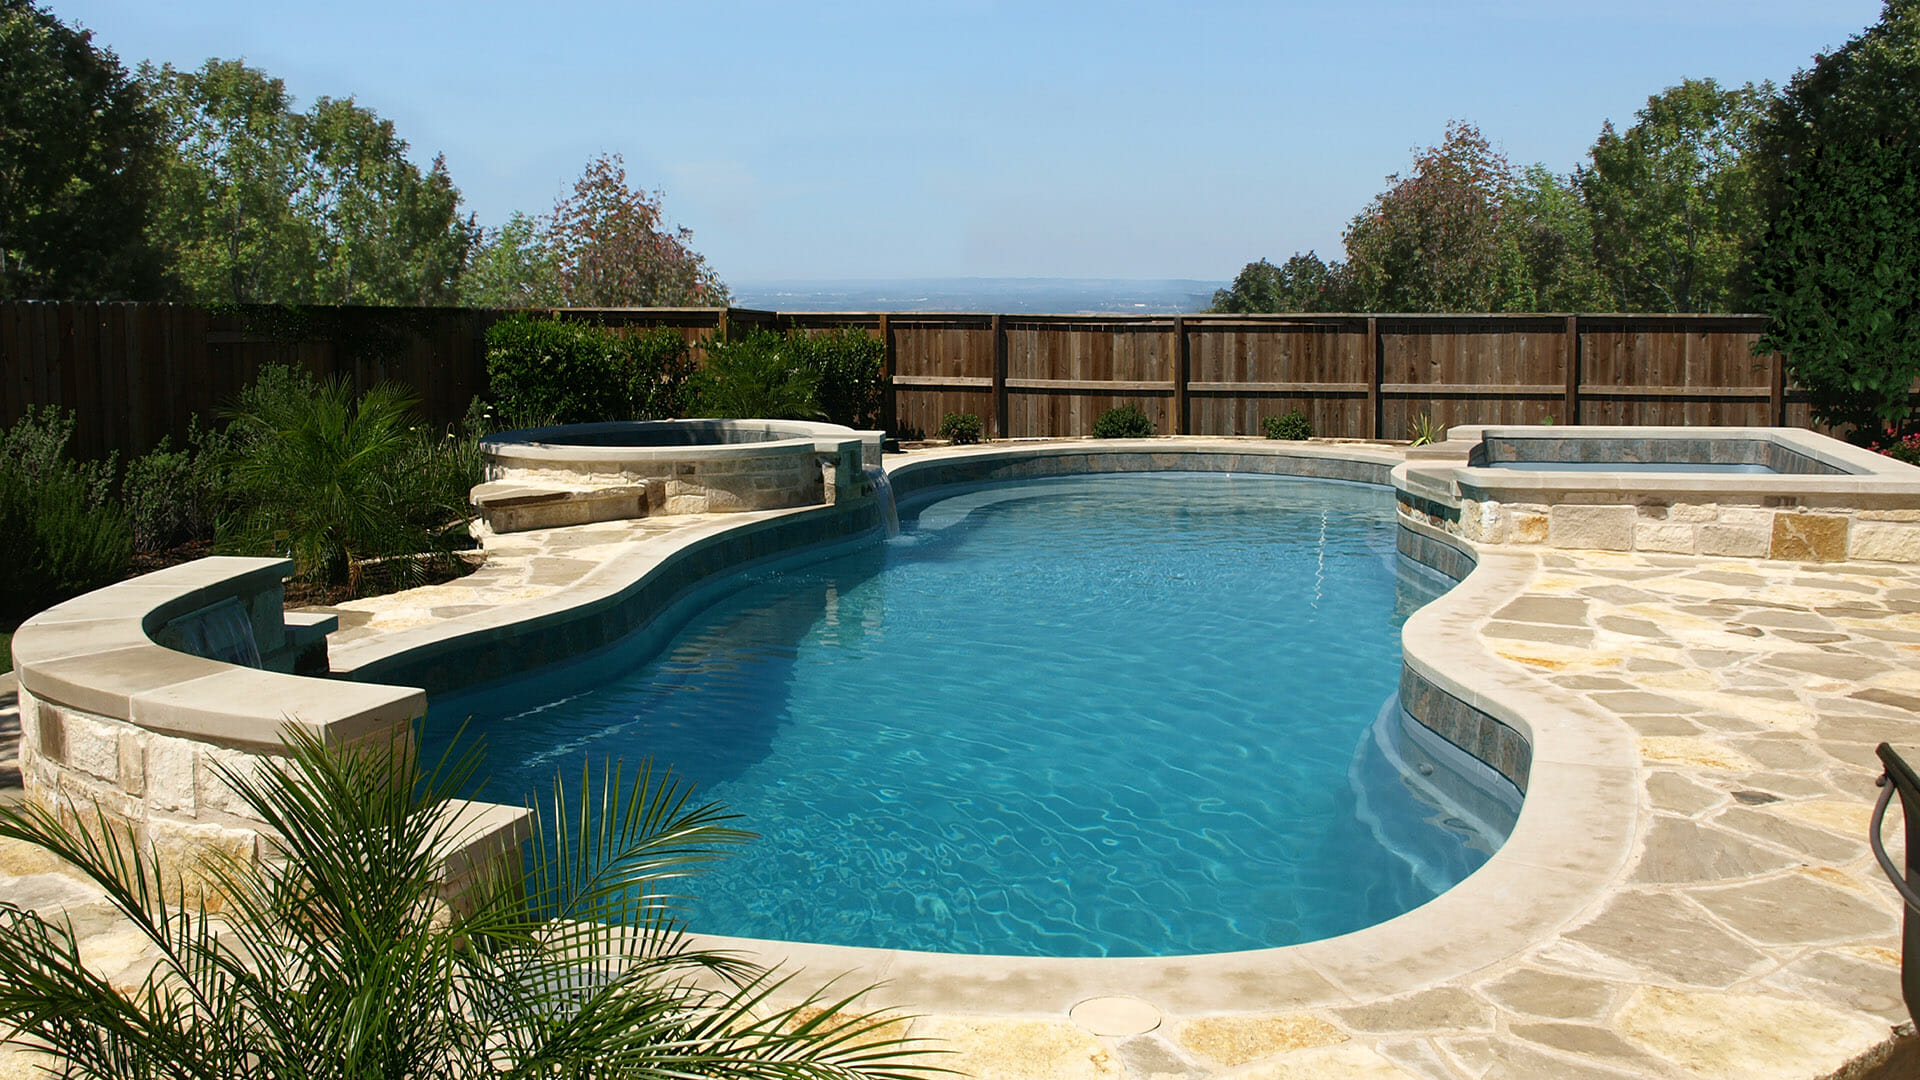 Caribbean Fiberglass pool with side pools by Leisure Pools